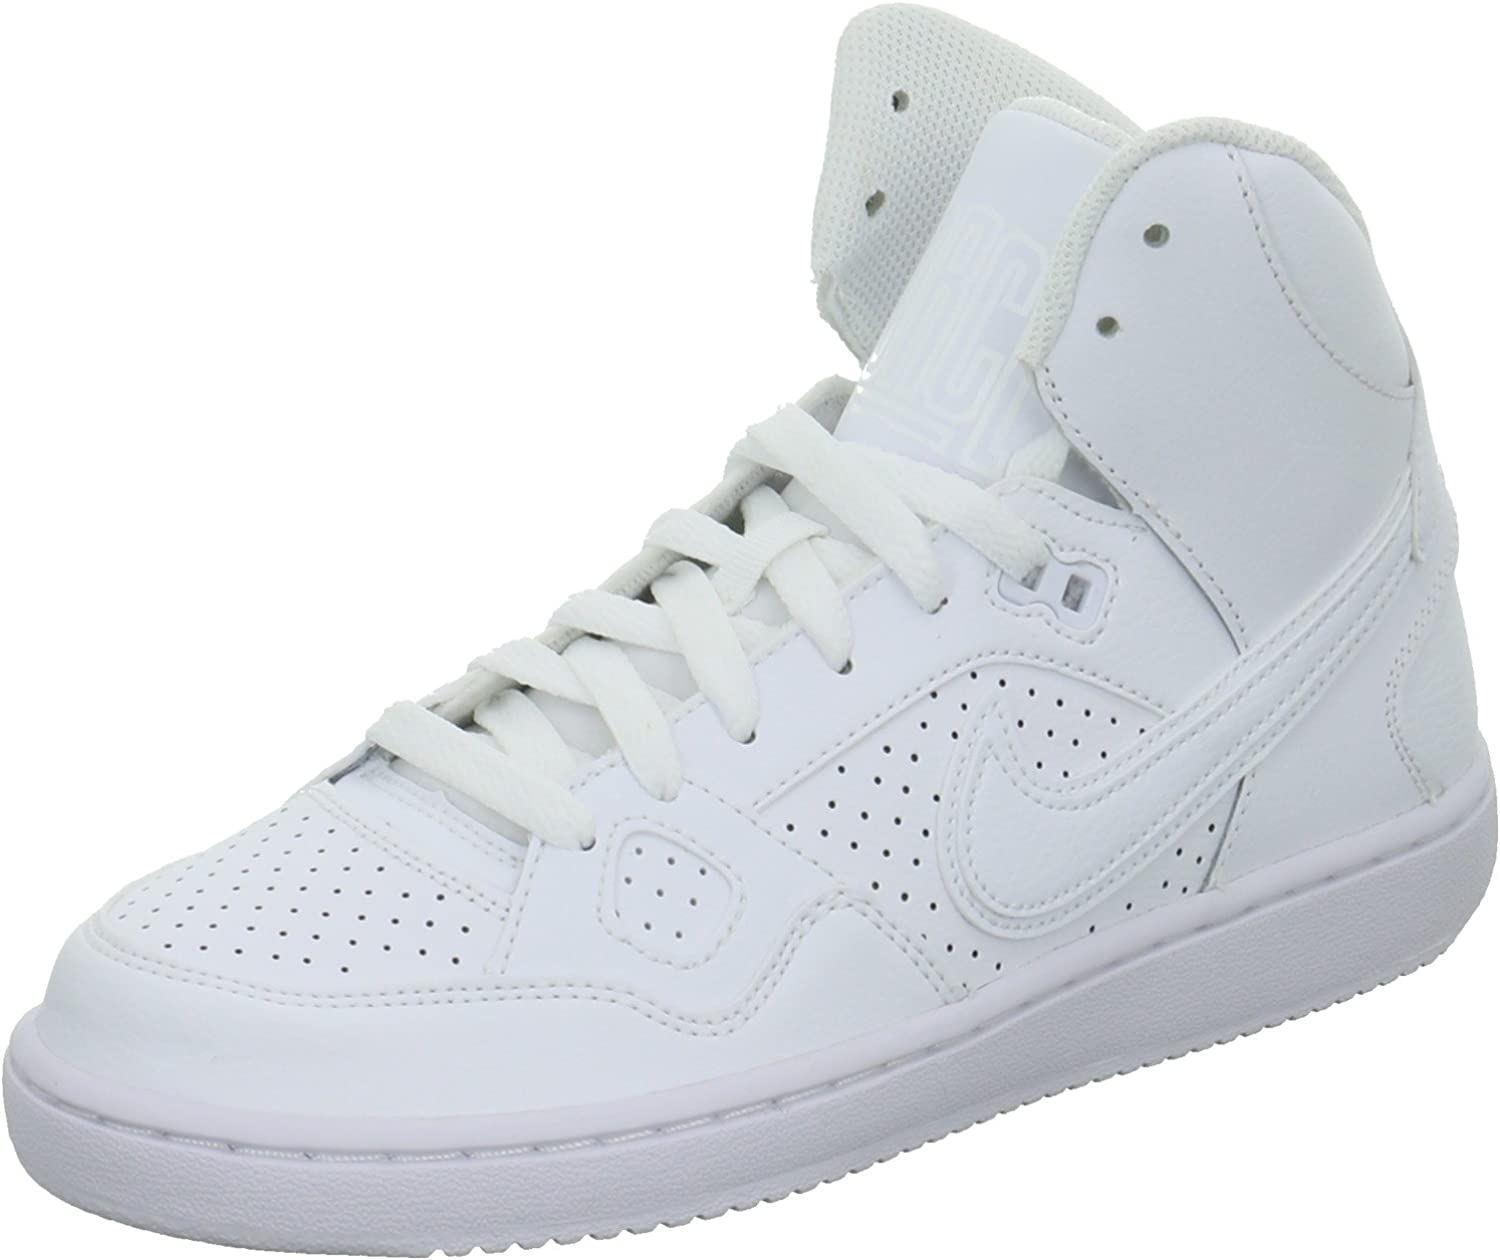 Nike Son of Force Mid GS Sneakers 2021 new Hi Top Trainers Shoes Gifts 615158